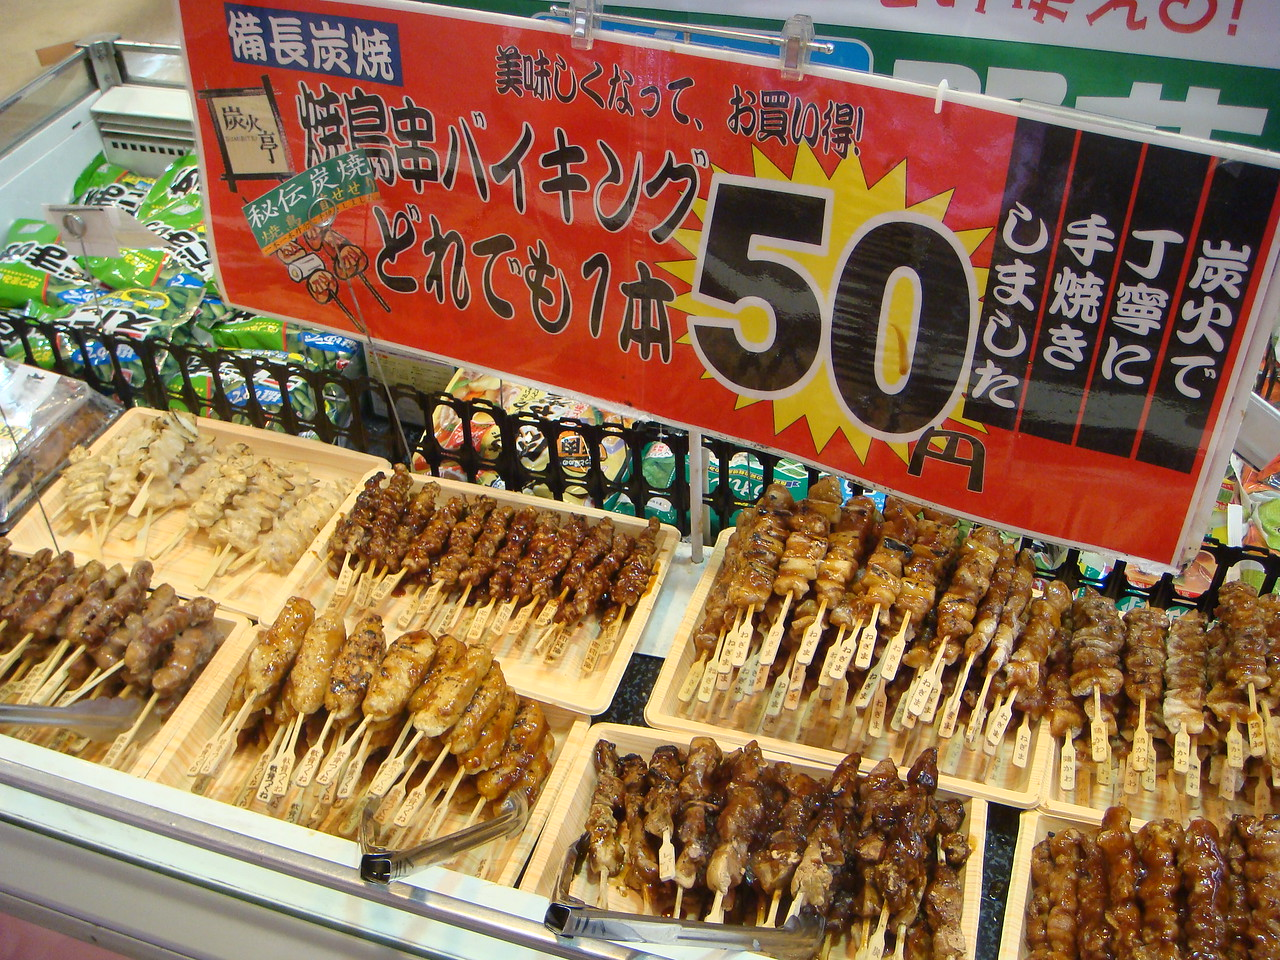 Seafood kabab selection at a grocery store in Hiroshima, Japan